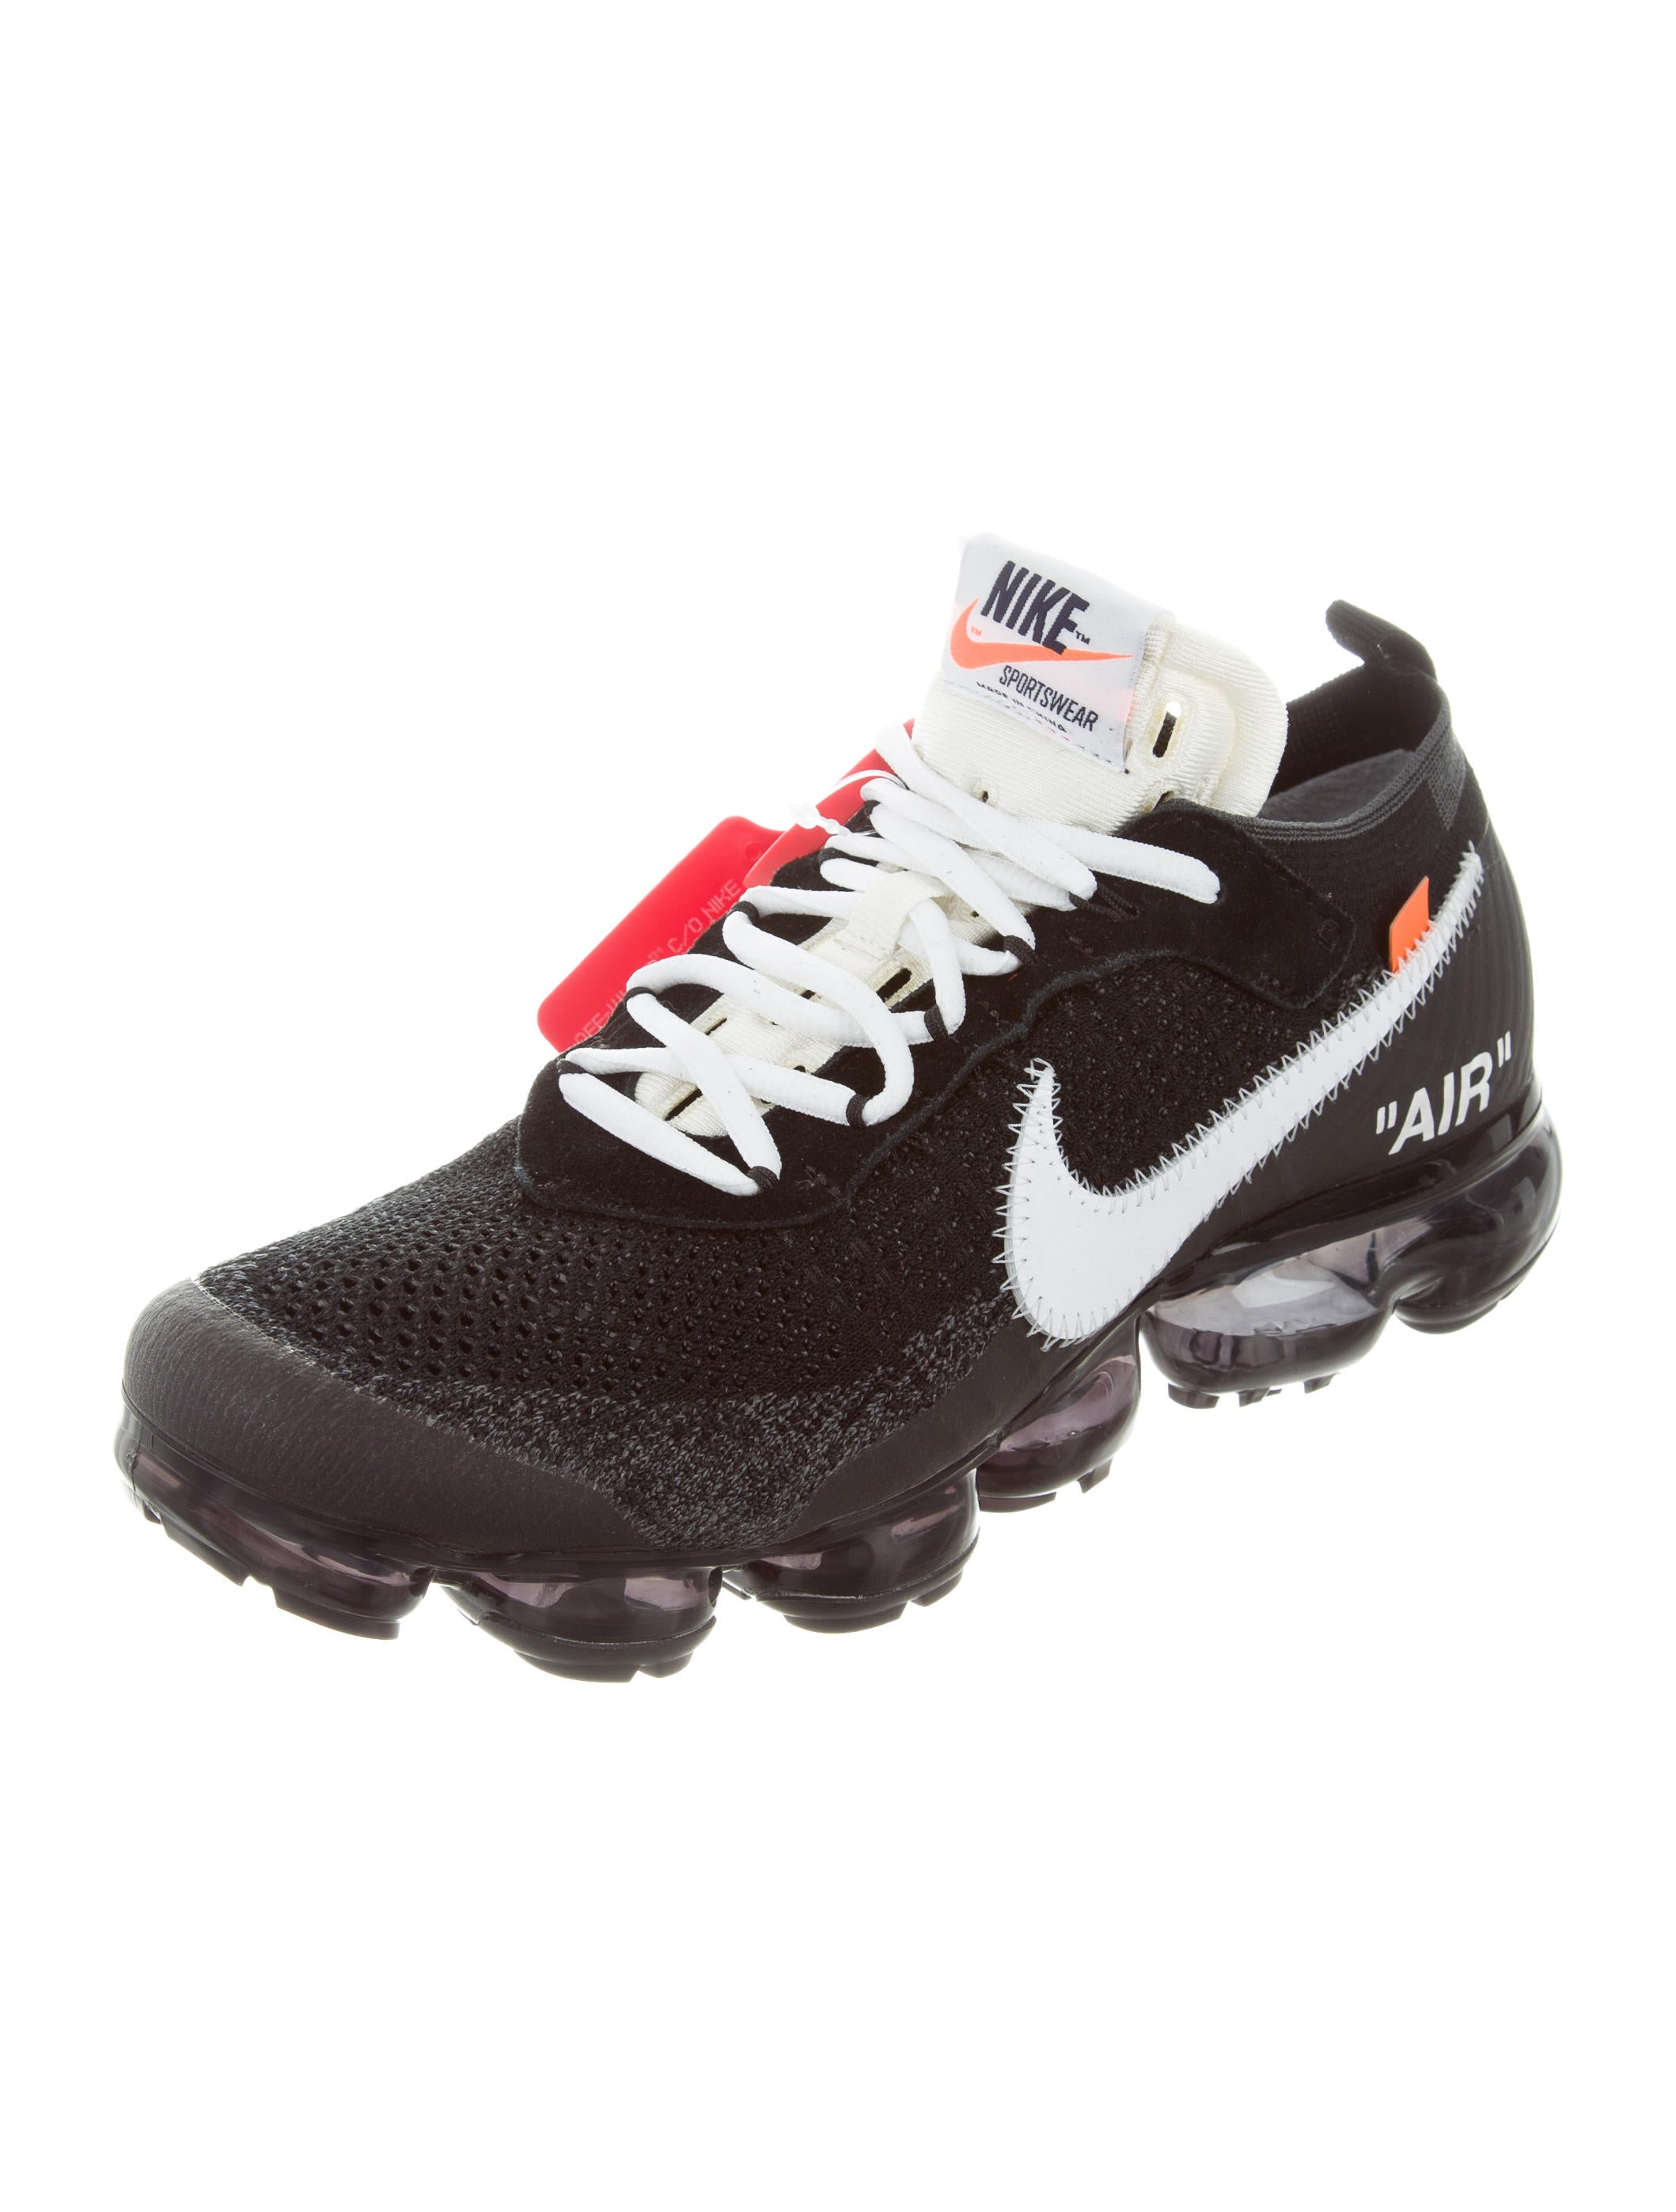 2017 Off-White x Nike Air Vapormax Sneakers w/ Tags